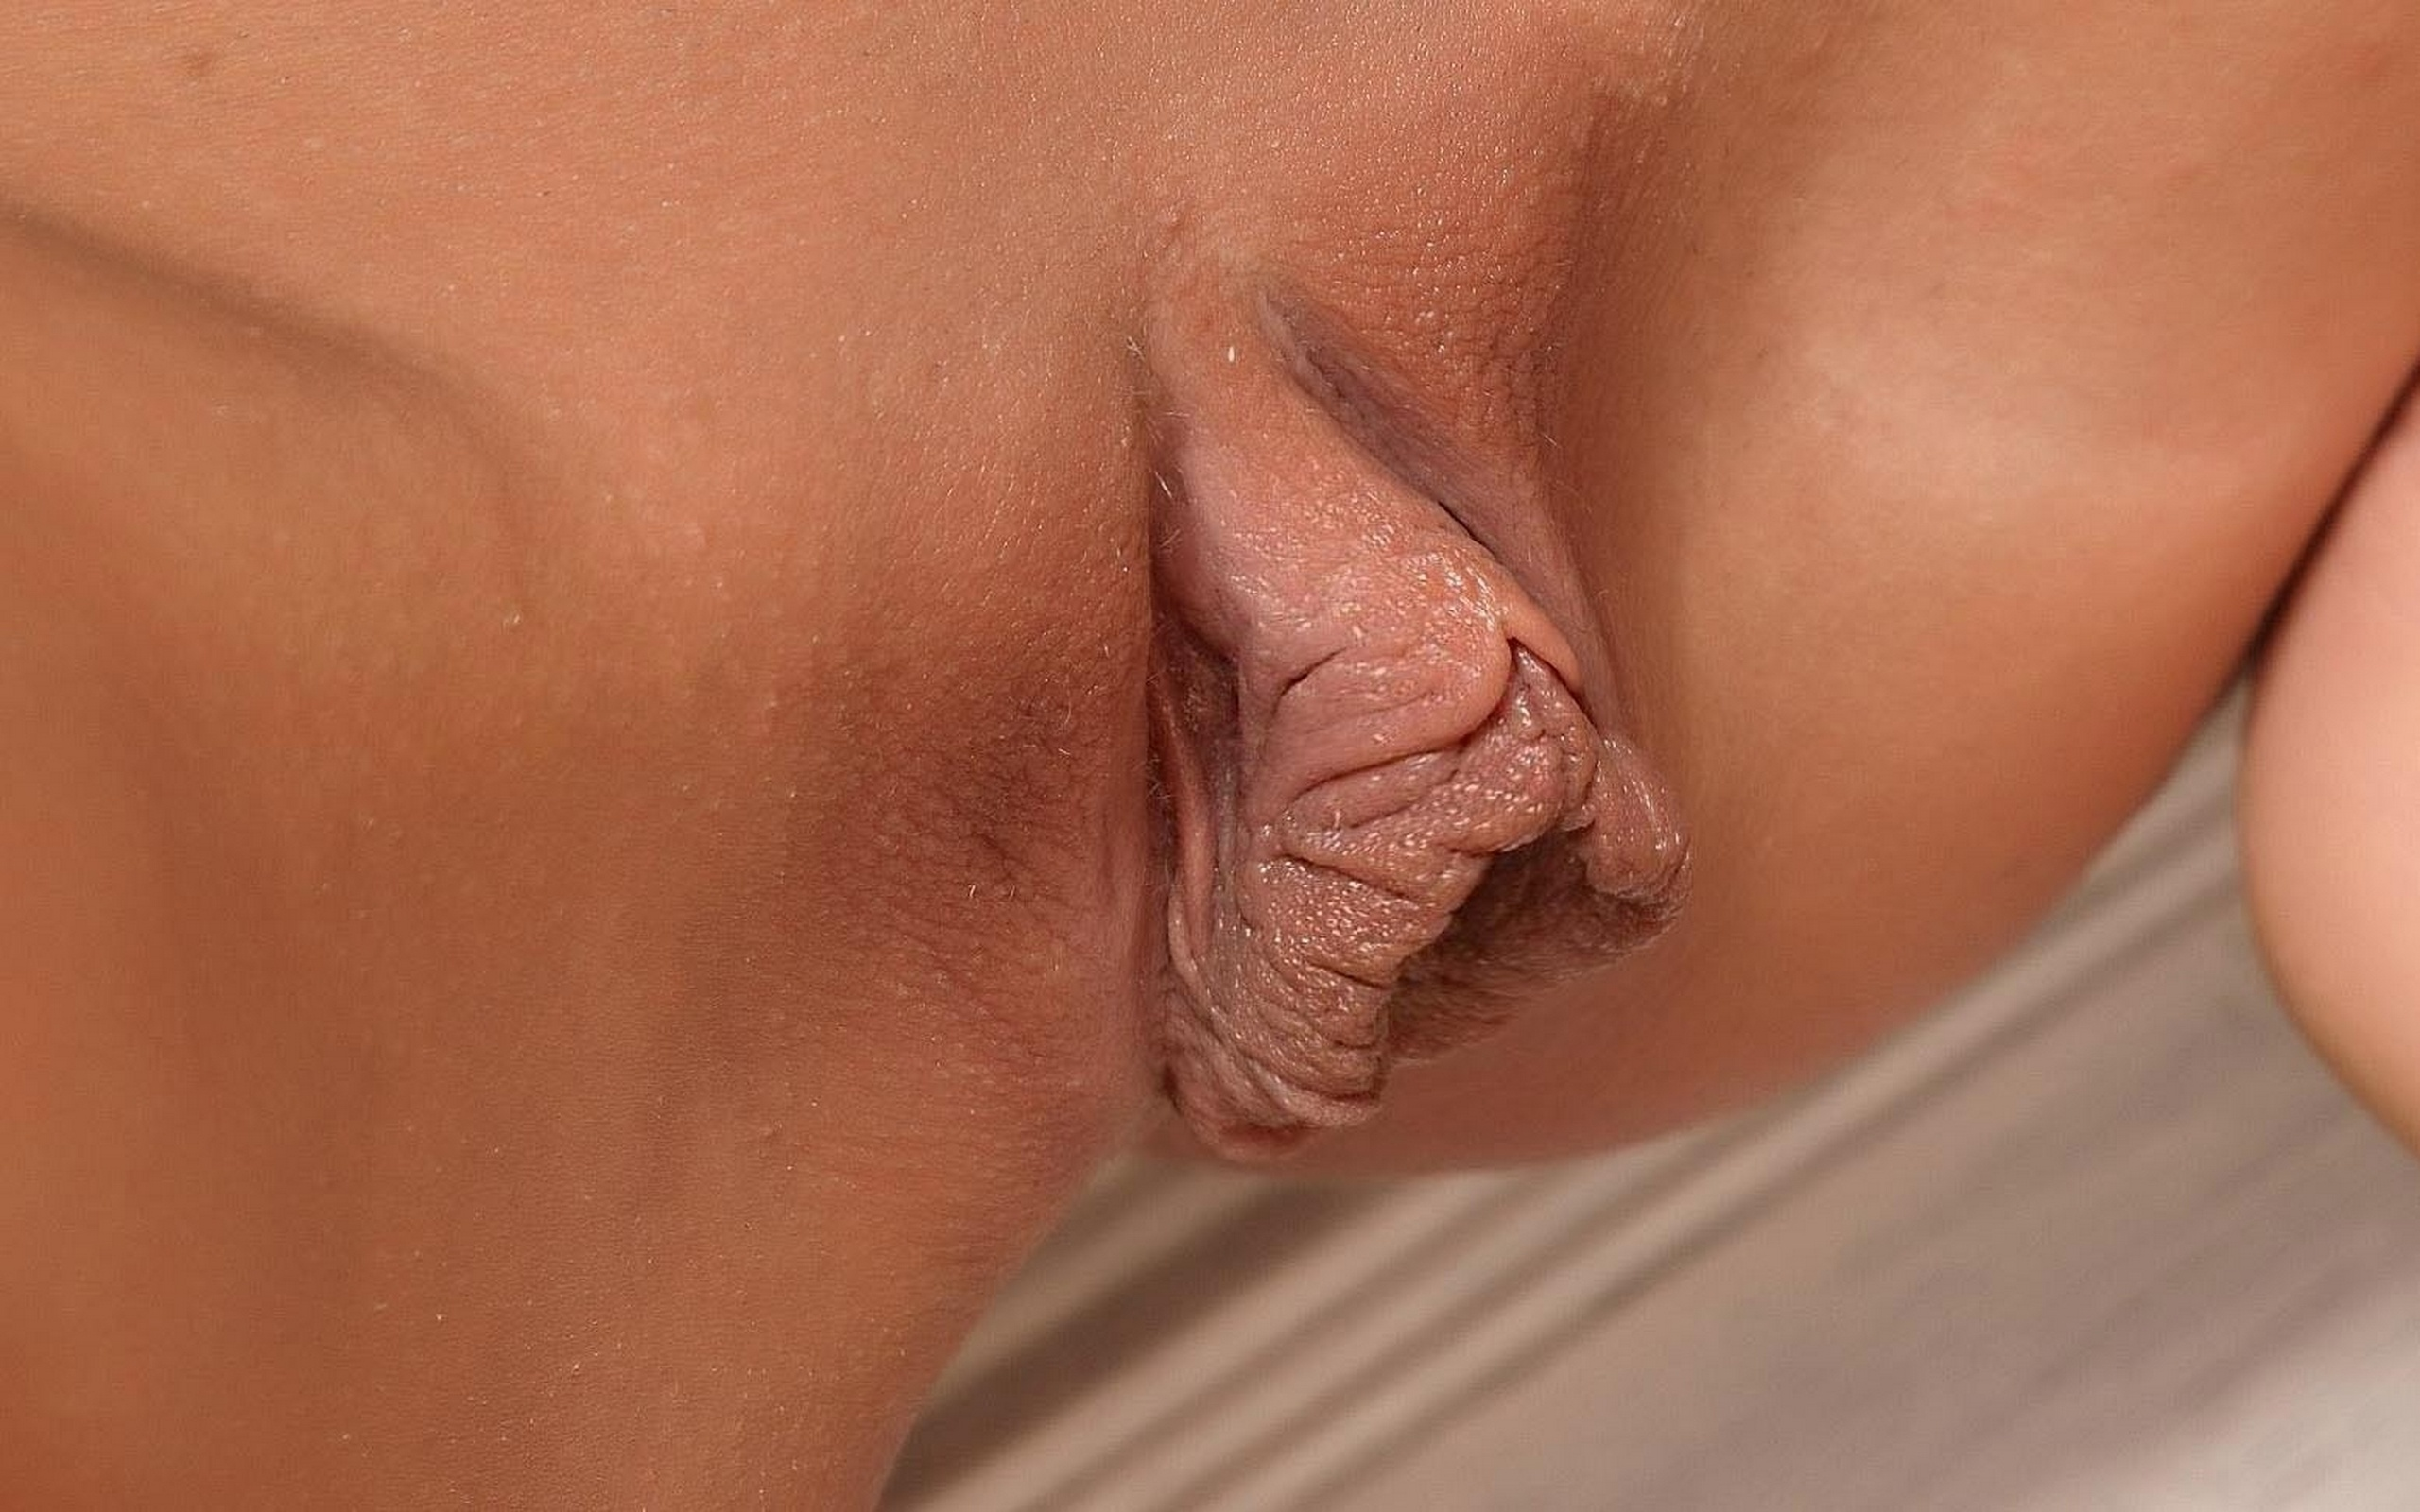 Wallpaper Pussy, Cunt, Clit, Labia, Outie, Meat Curtains -9974